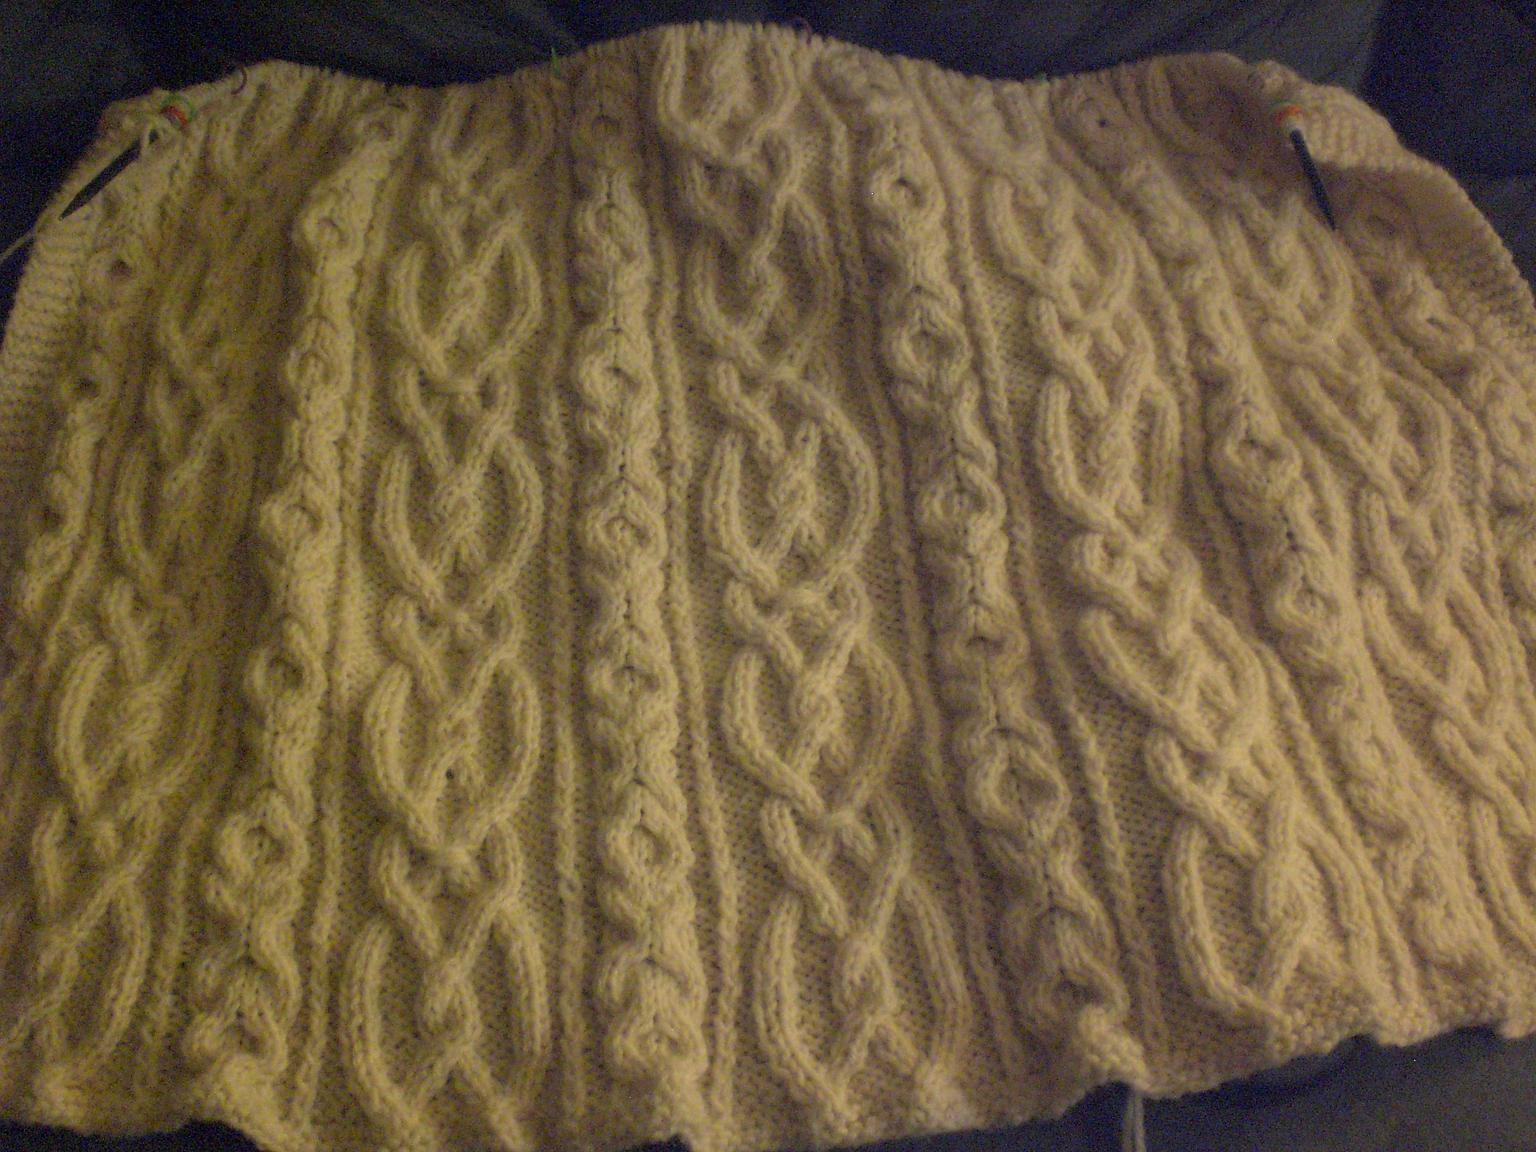 Lovers Knot Knitting Stitch : Luvsknitting: The Lovers Knot Afghan & Other Ideas